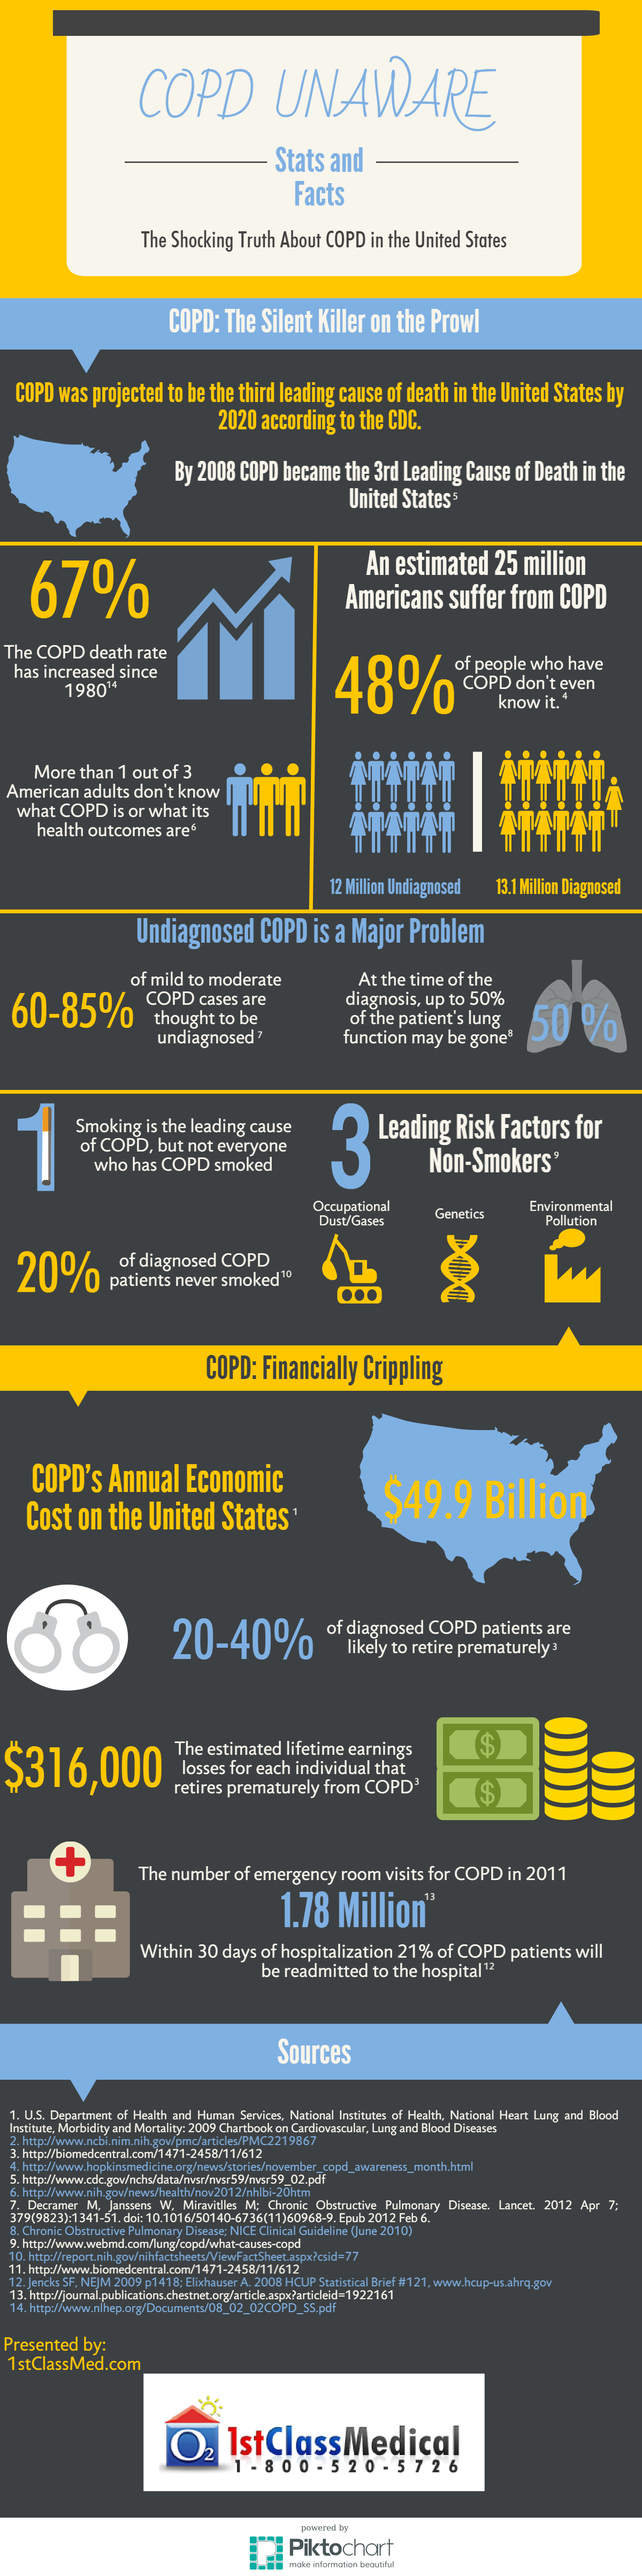 COPD Unaware Infographic